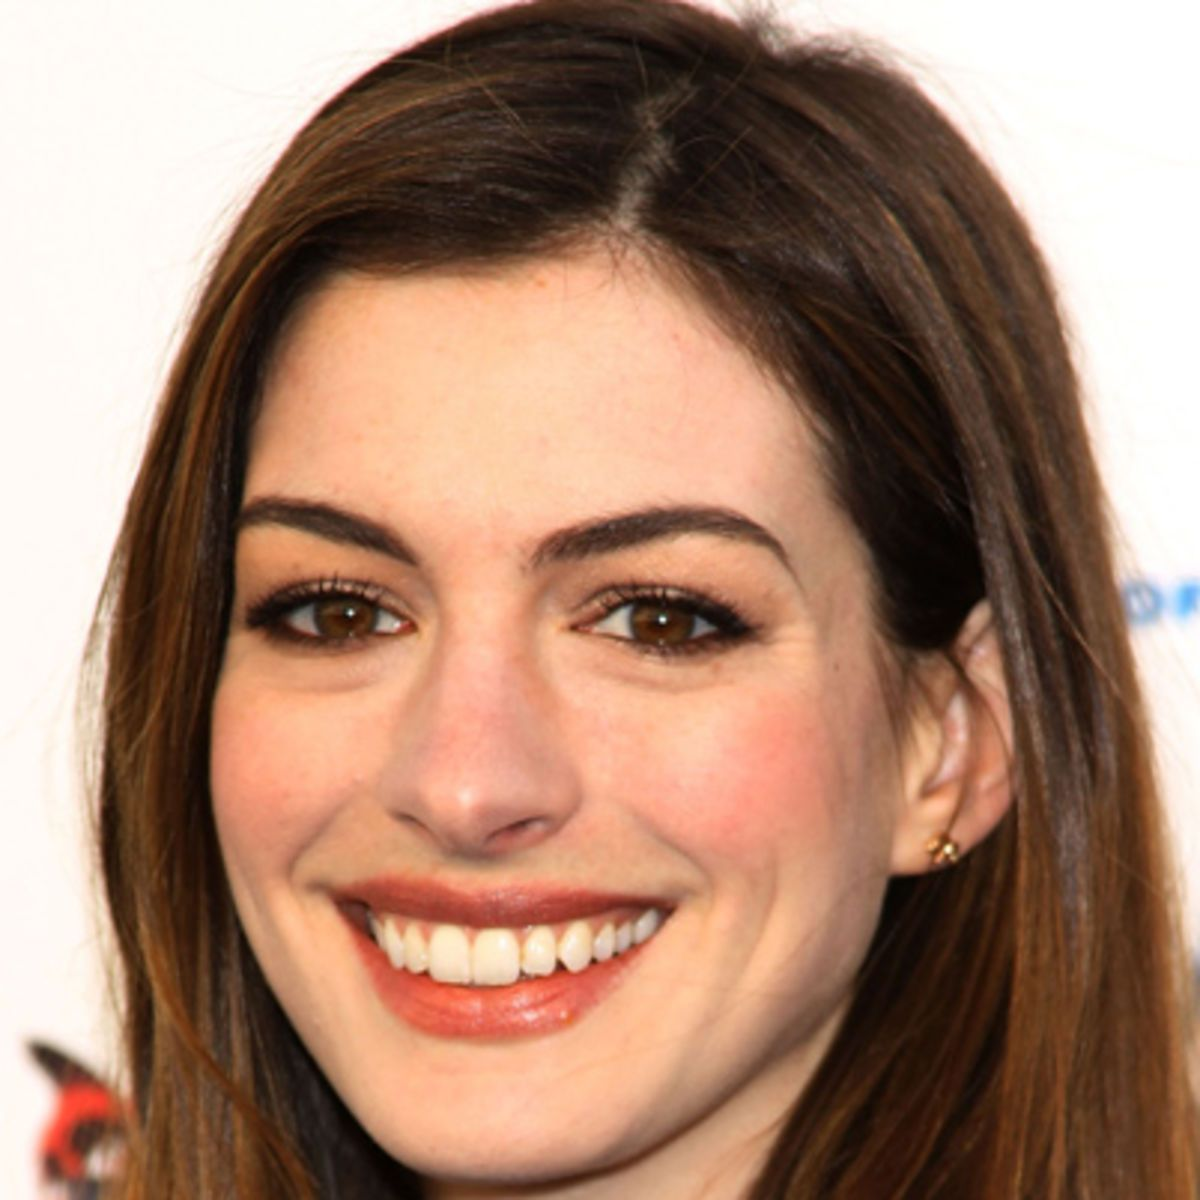 Anne Hathaway Movies: Best 25+ Anne Hathaway Films Ideas On Pinterest